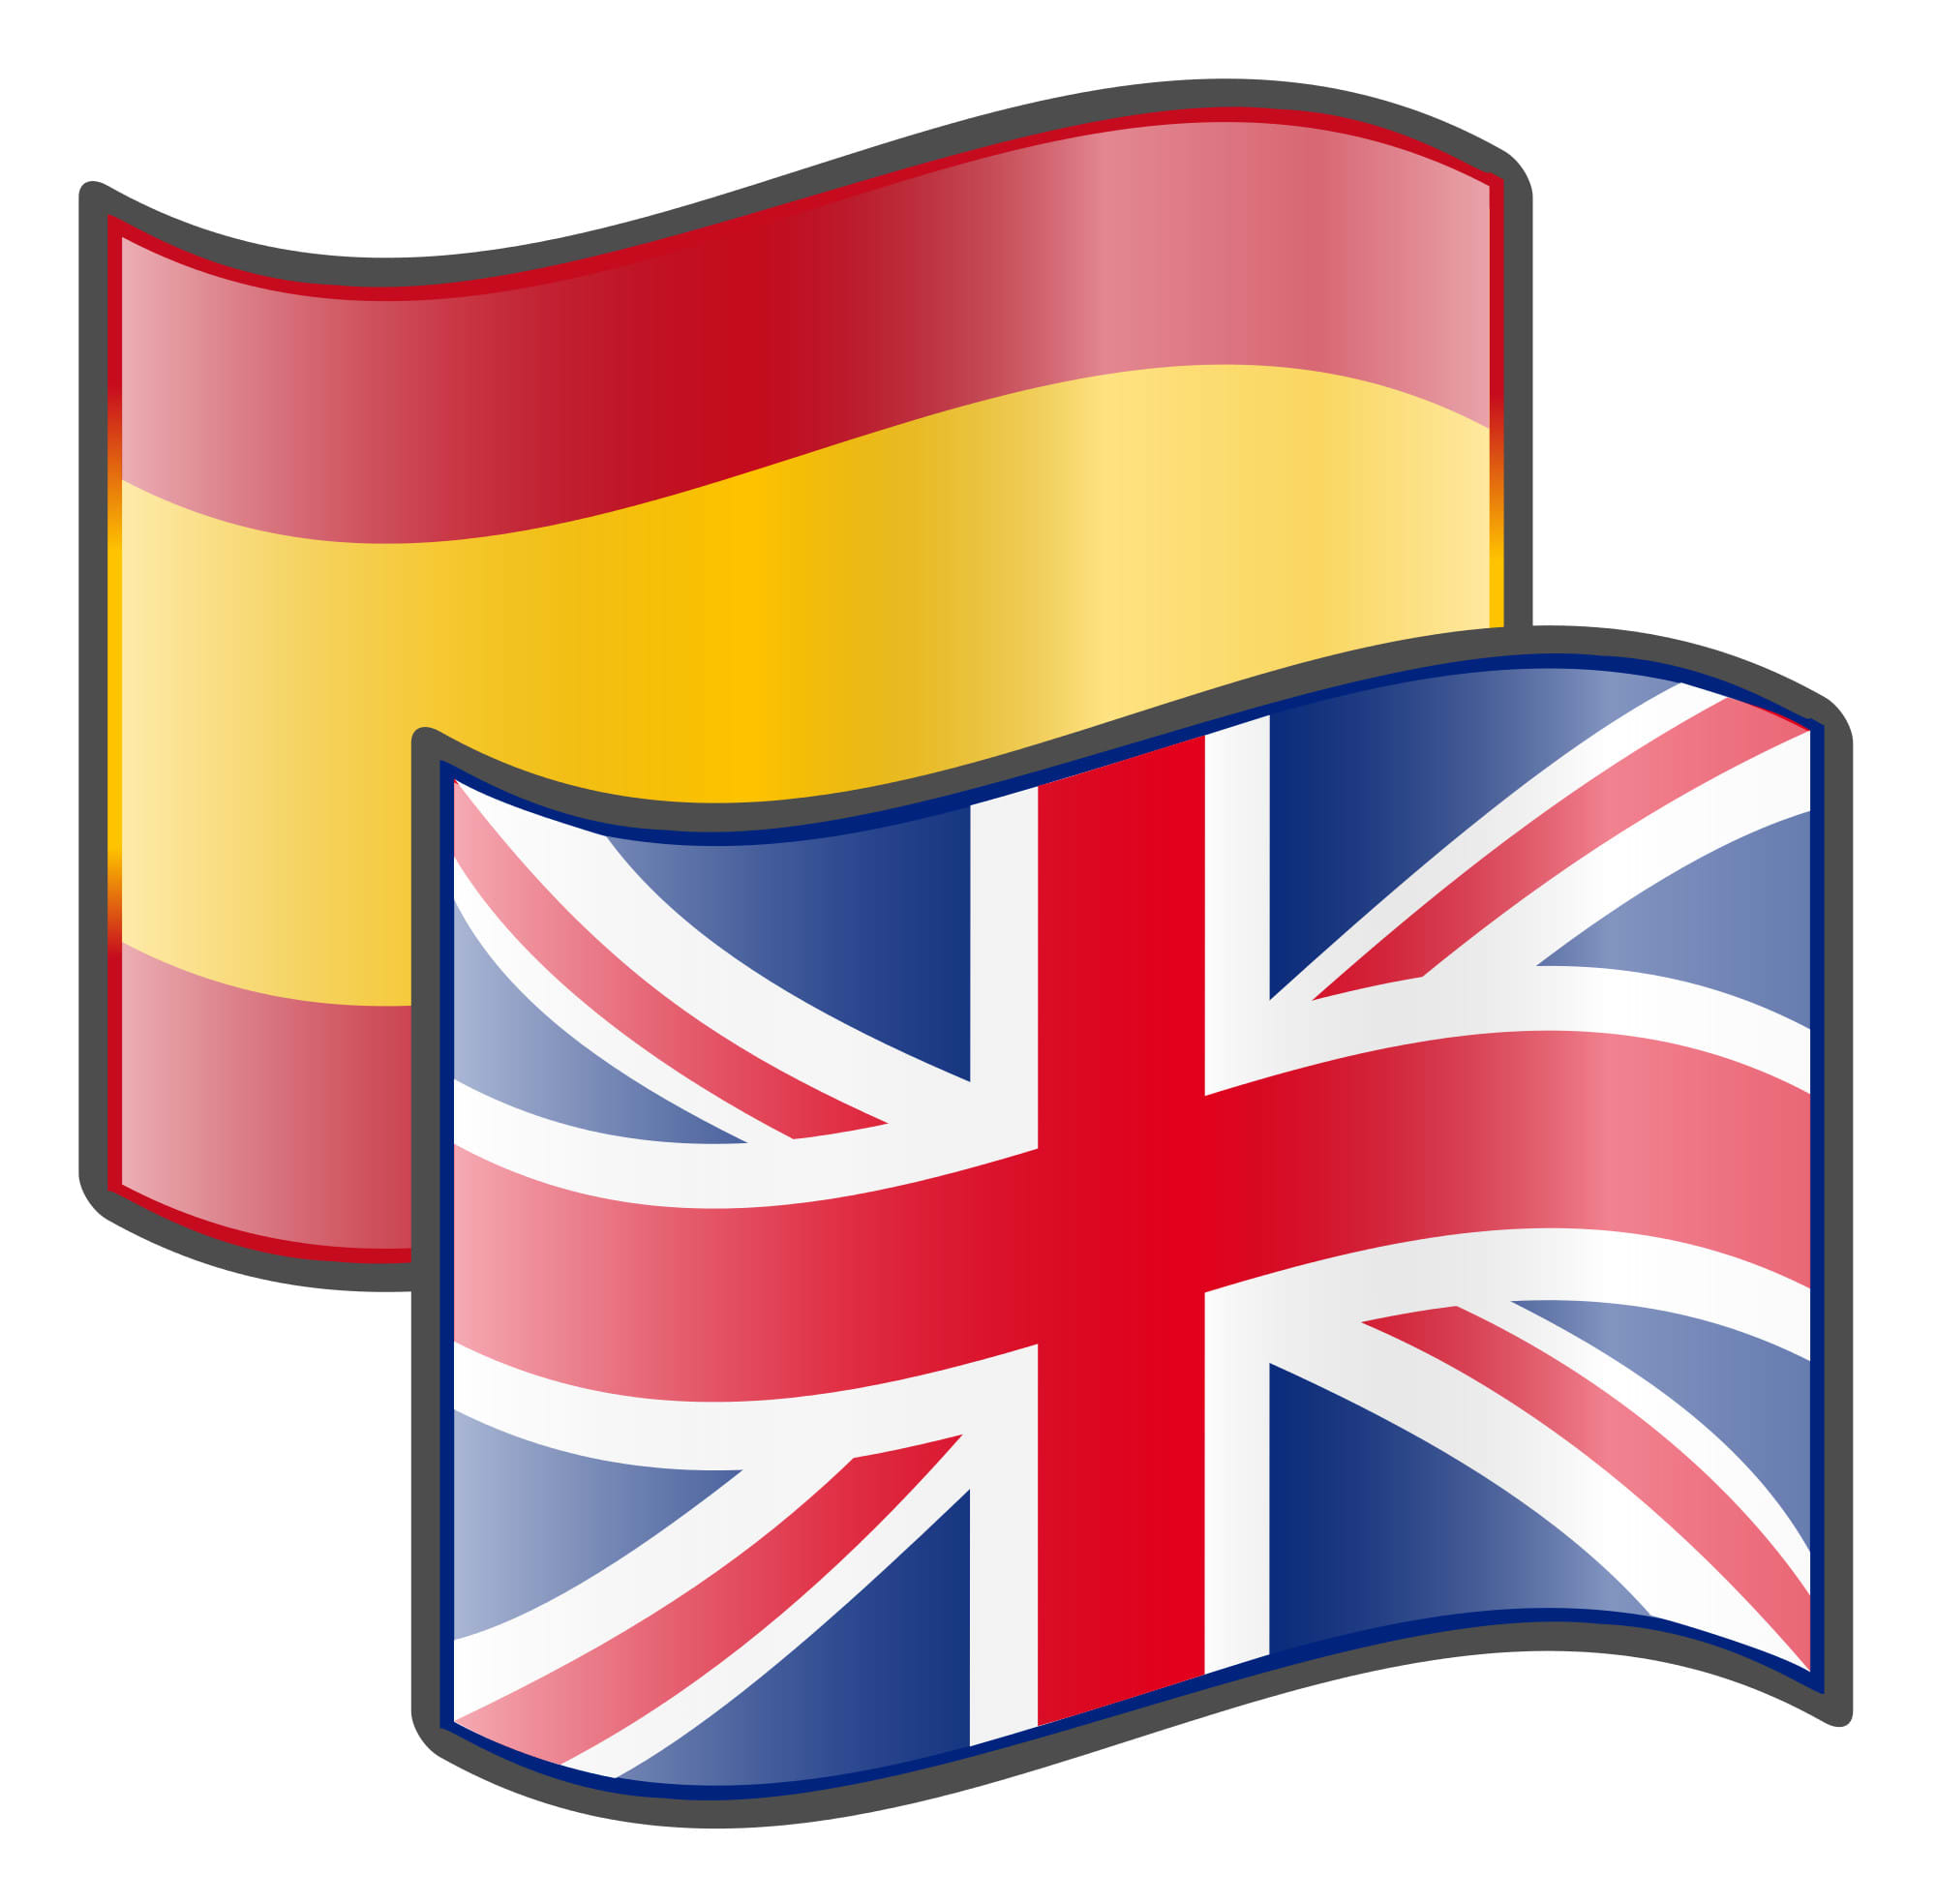 joseloverap : I will translate spanish to english or english to spanish for  $5 on www.fiverr.com.